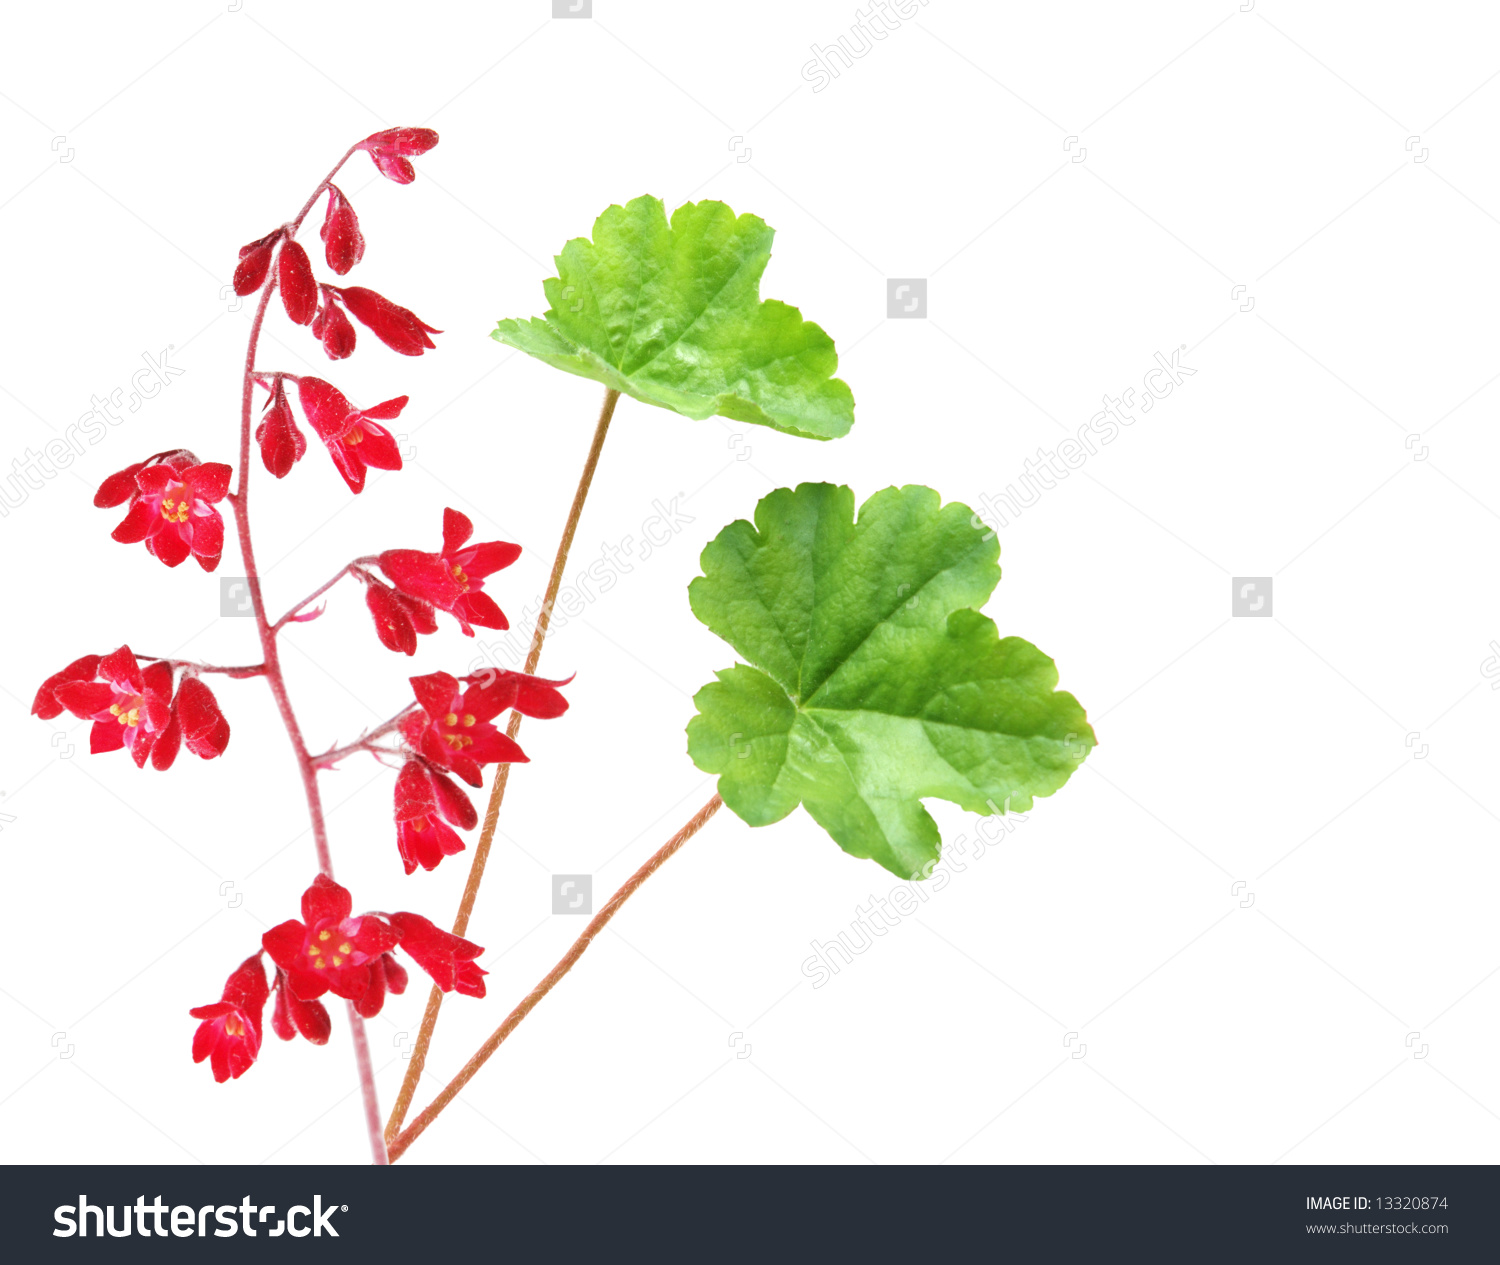 Heuchera Coral Bells Flowers Cluster And Leaves, Isolated On White.